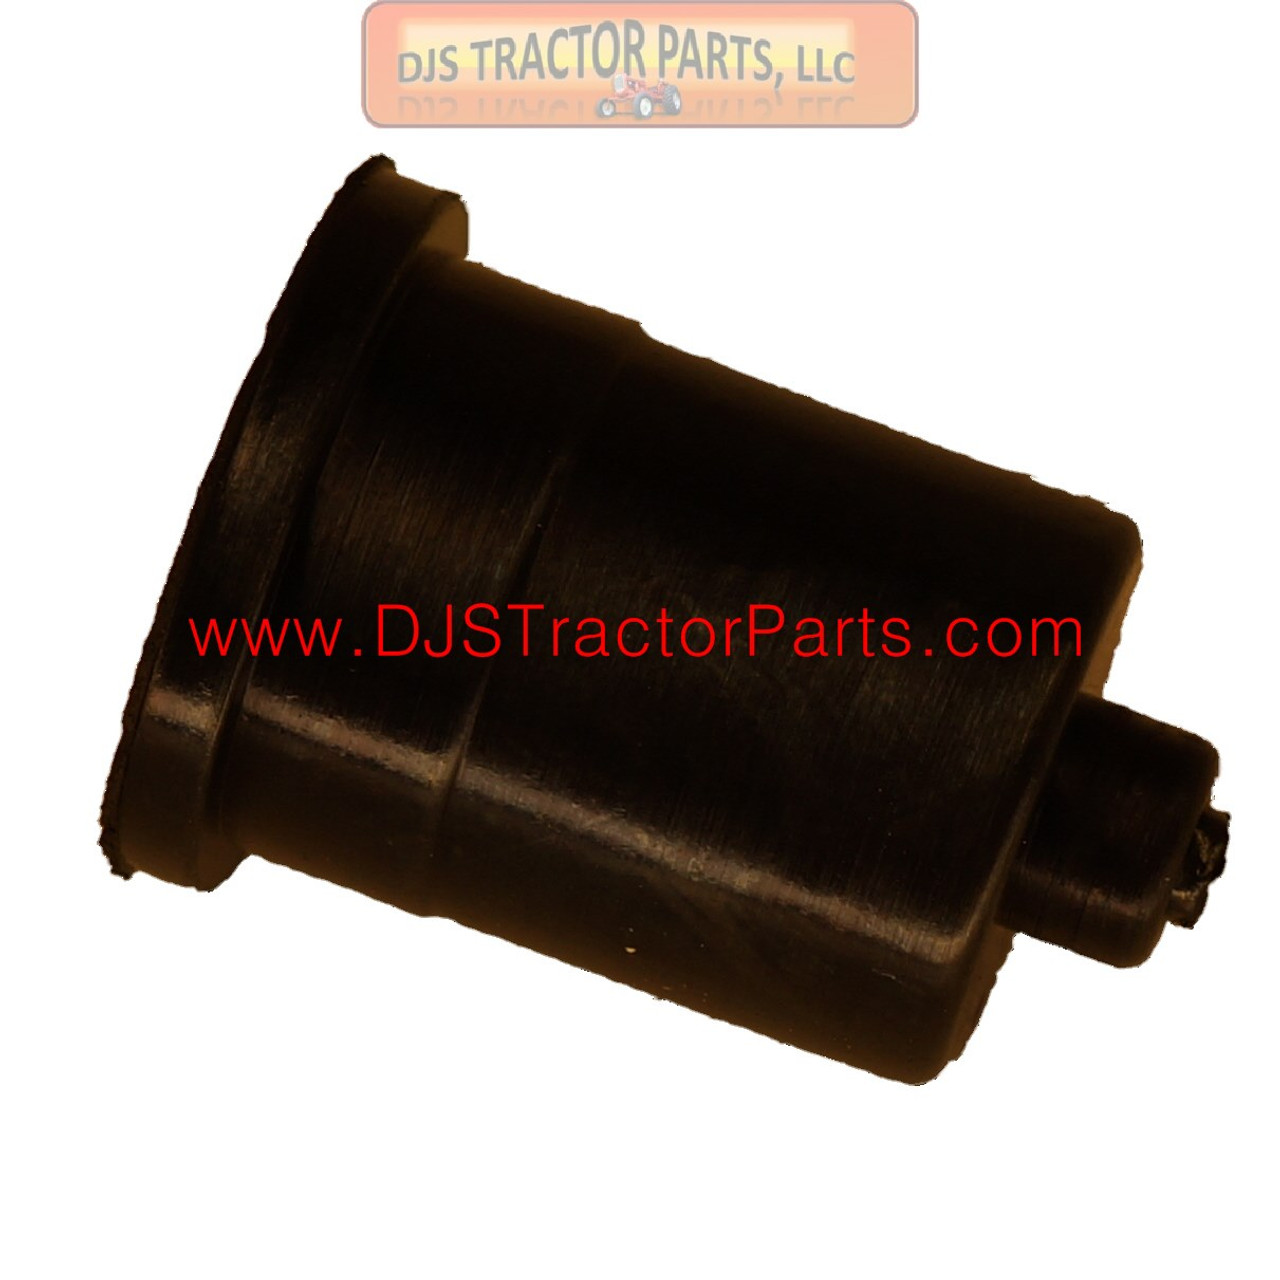 electrical outlet socket boot 1 wire style ab 2285d djs tractor parts llc [ 1211 x 1211 Pixel ]